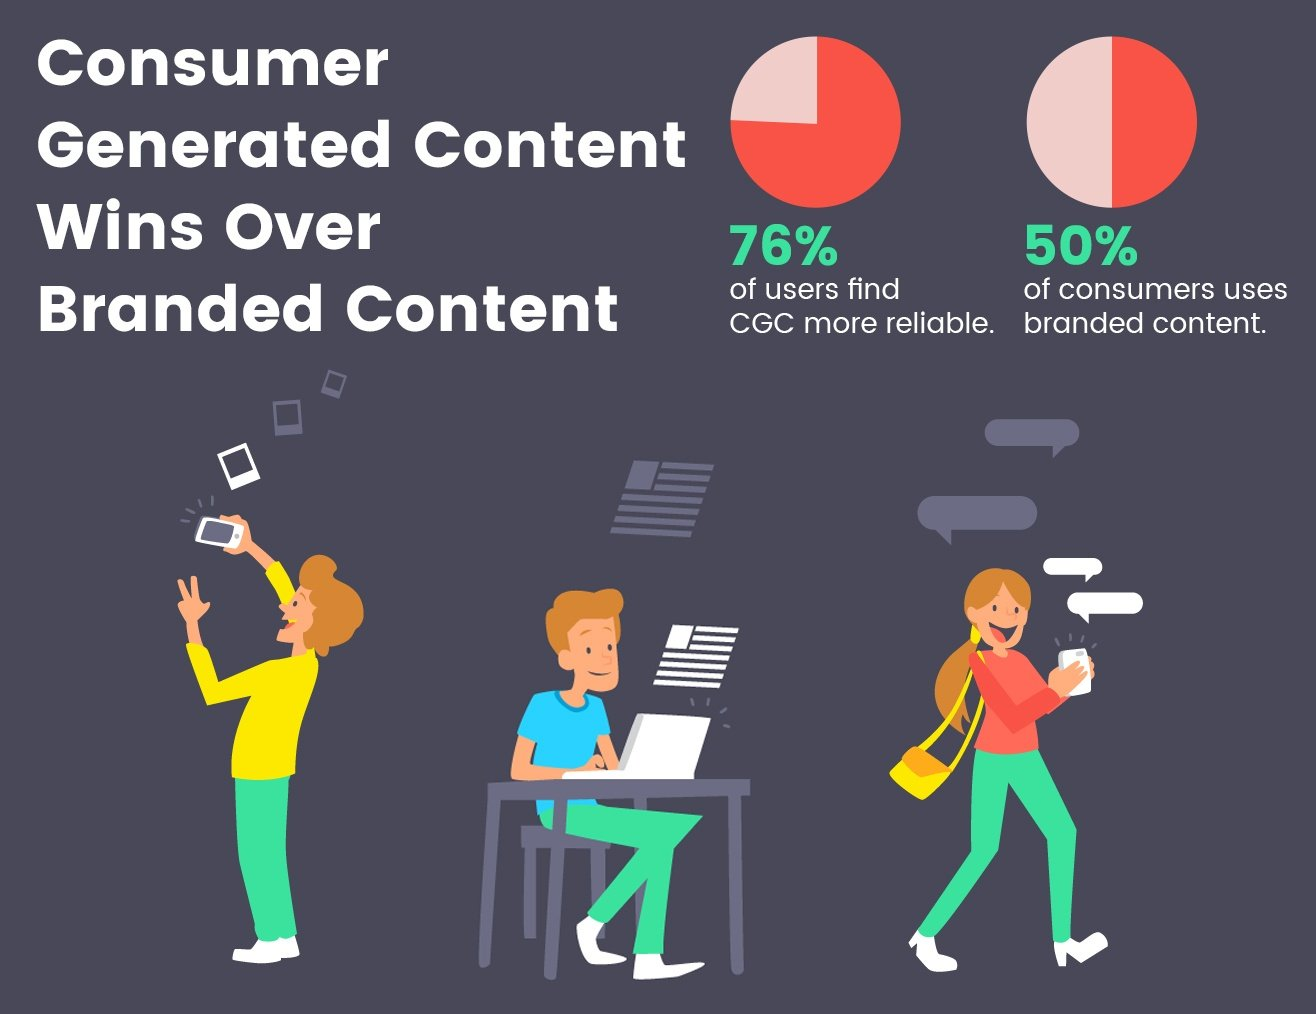 CGC over branded content